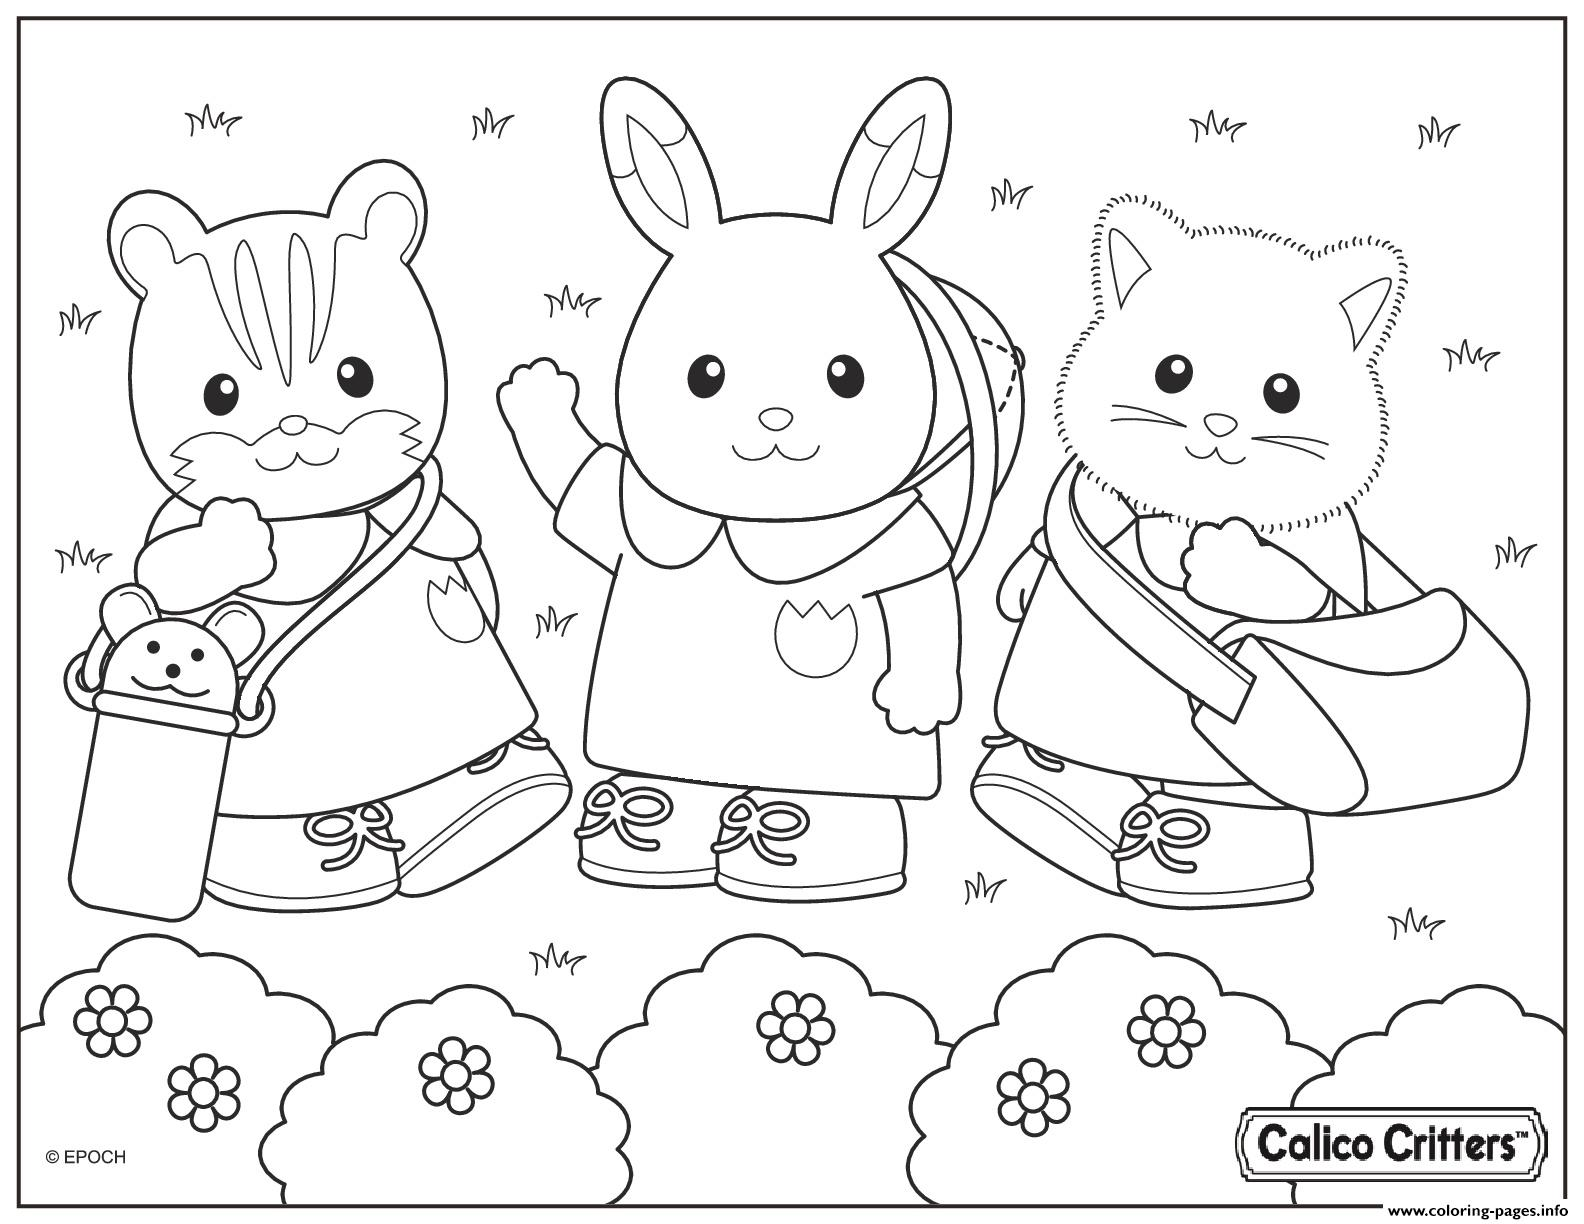 Calico Critters In The Park Coloring Pages Printable